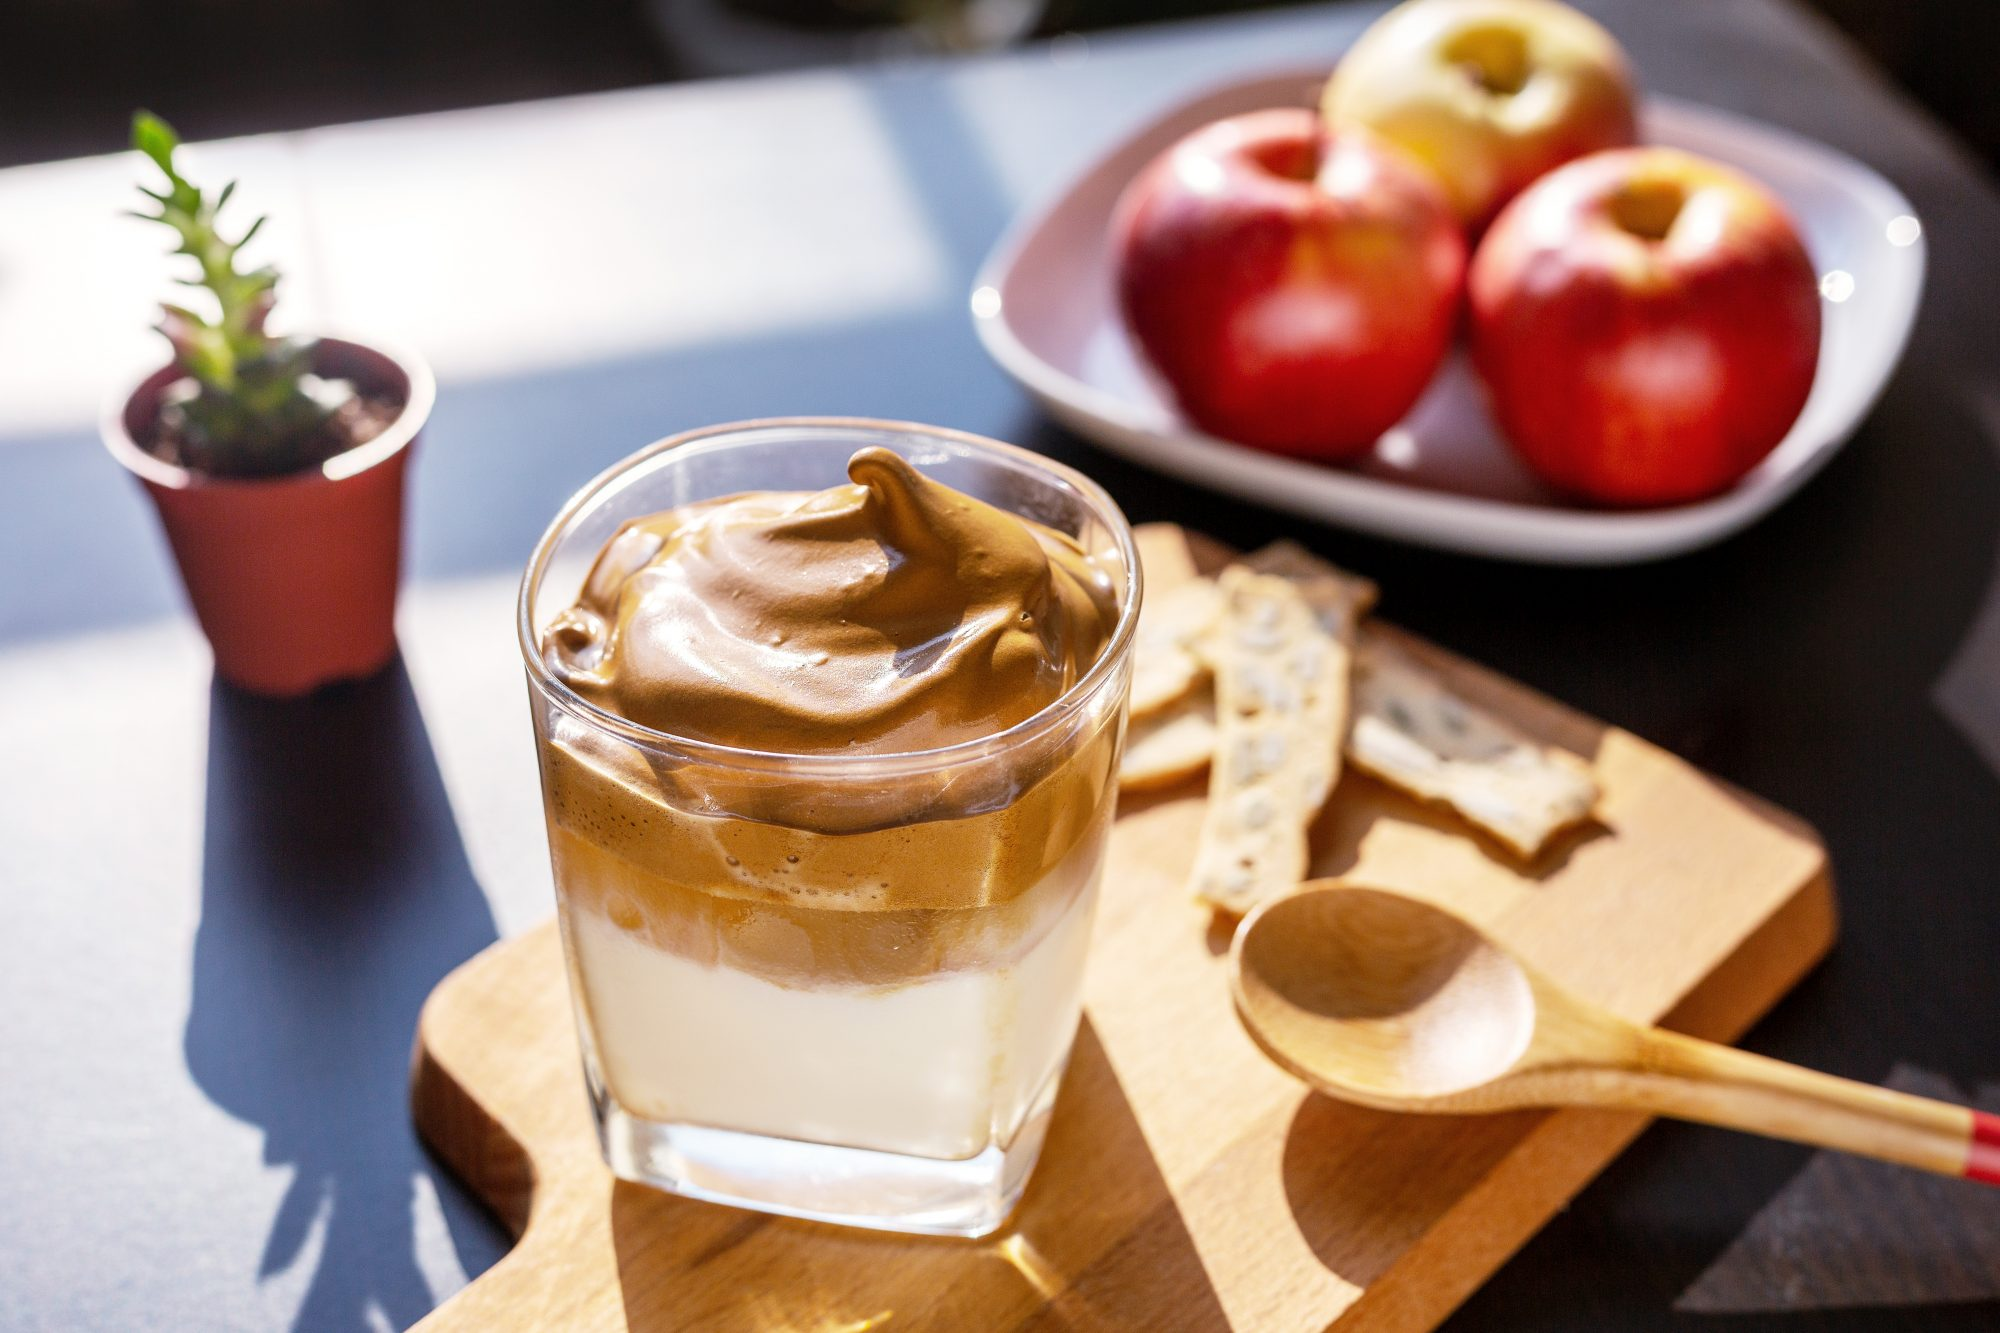 Delicious homemade Iced Dalgona Coffee, a trendy fluffy creamy whipped coffee—served on a table, with a plate of apple as background